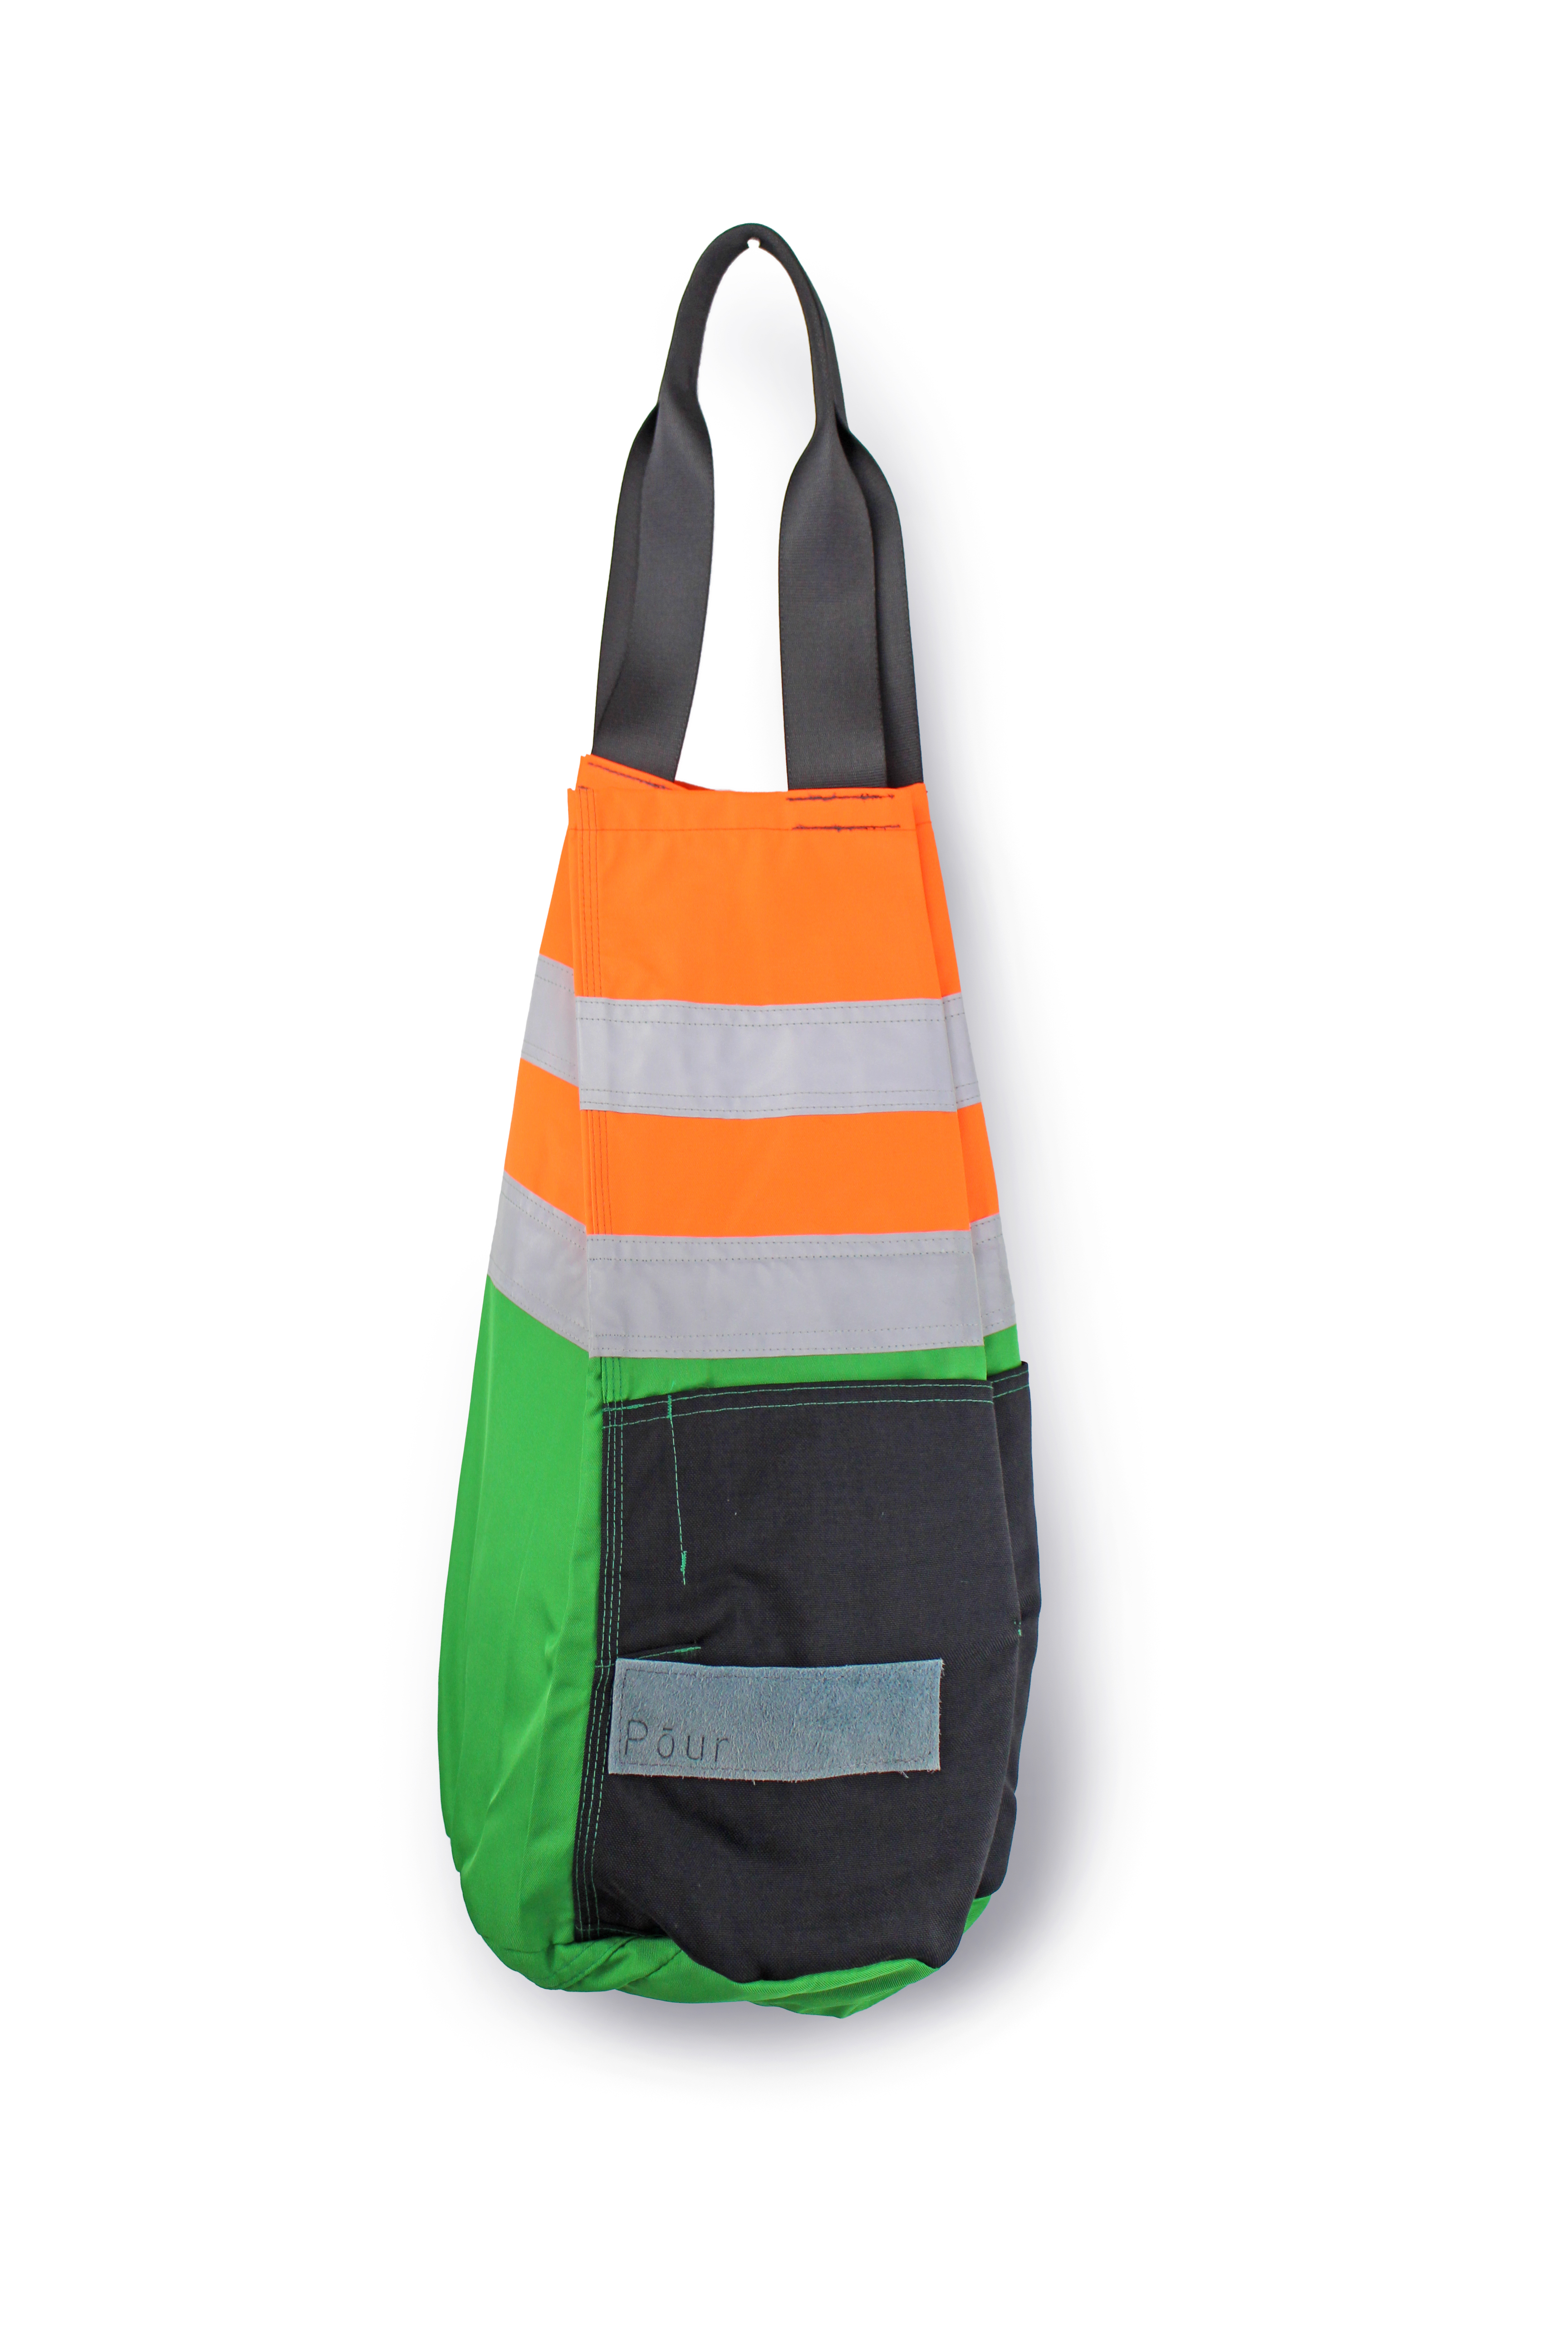 Green Orange Small Apartment Living Room Decor: DITTY BAG Small_ Neon Orange Green